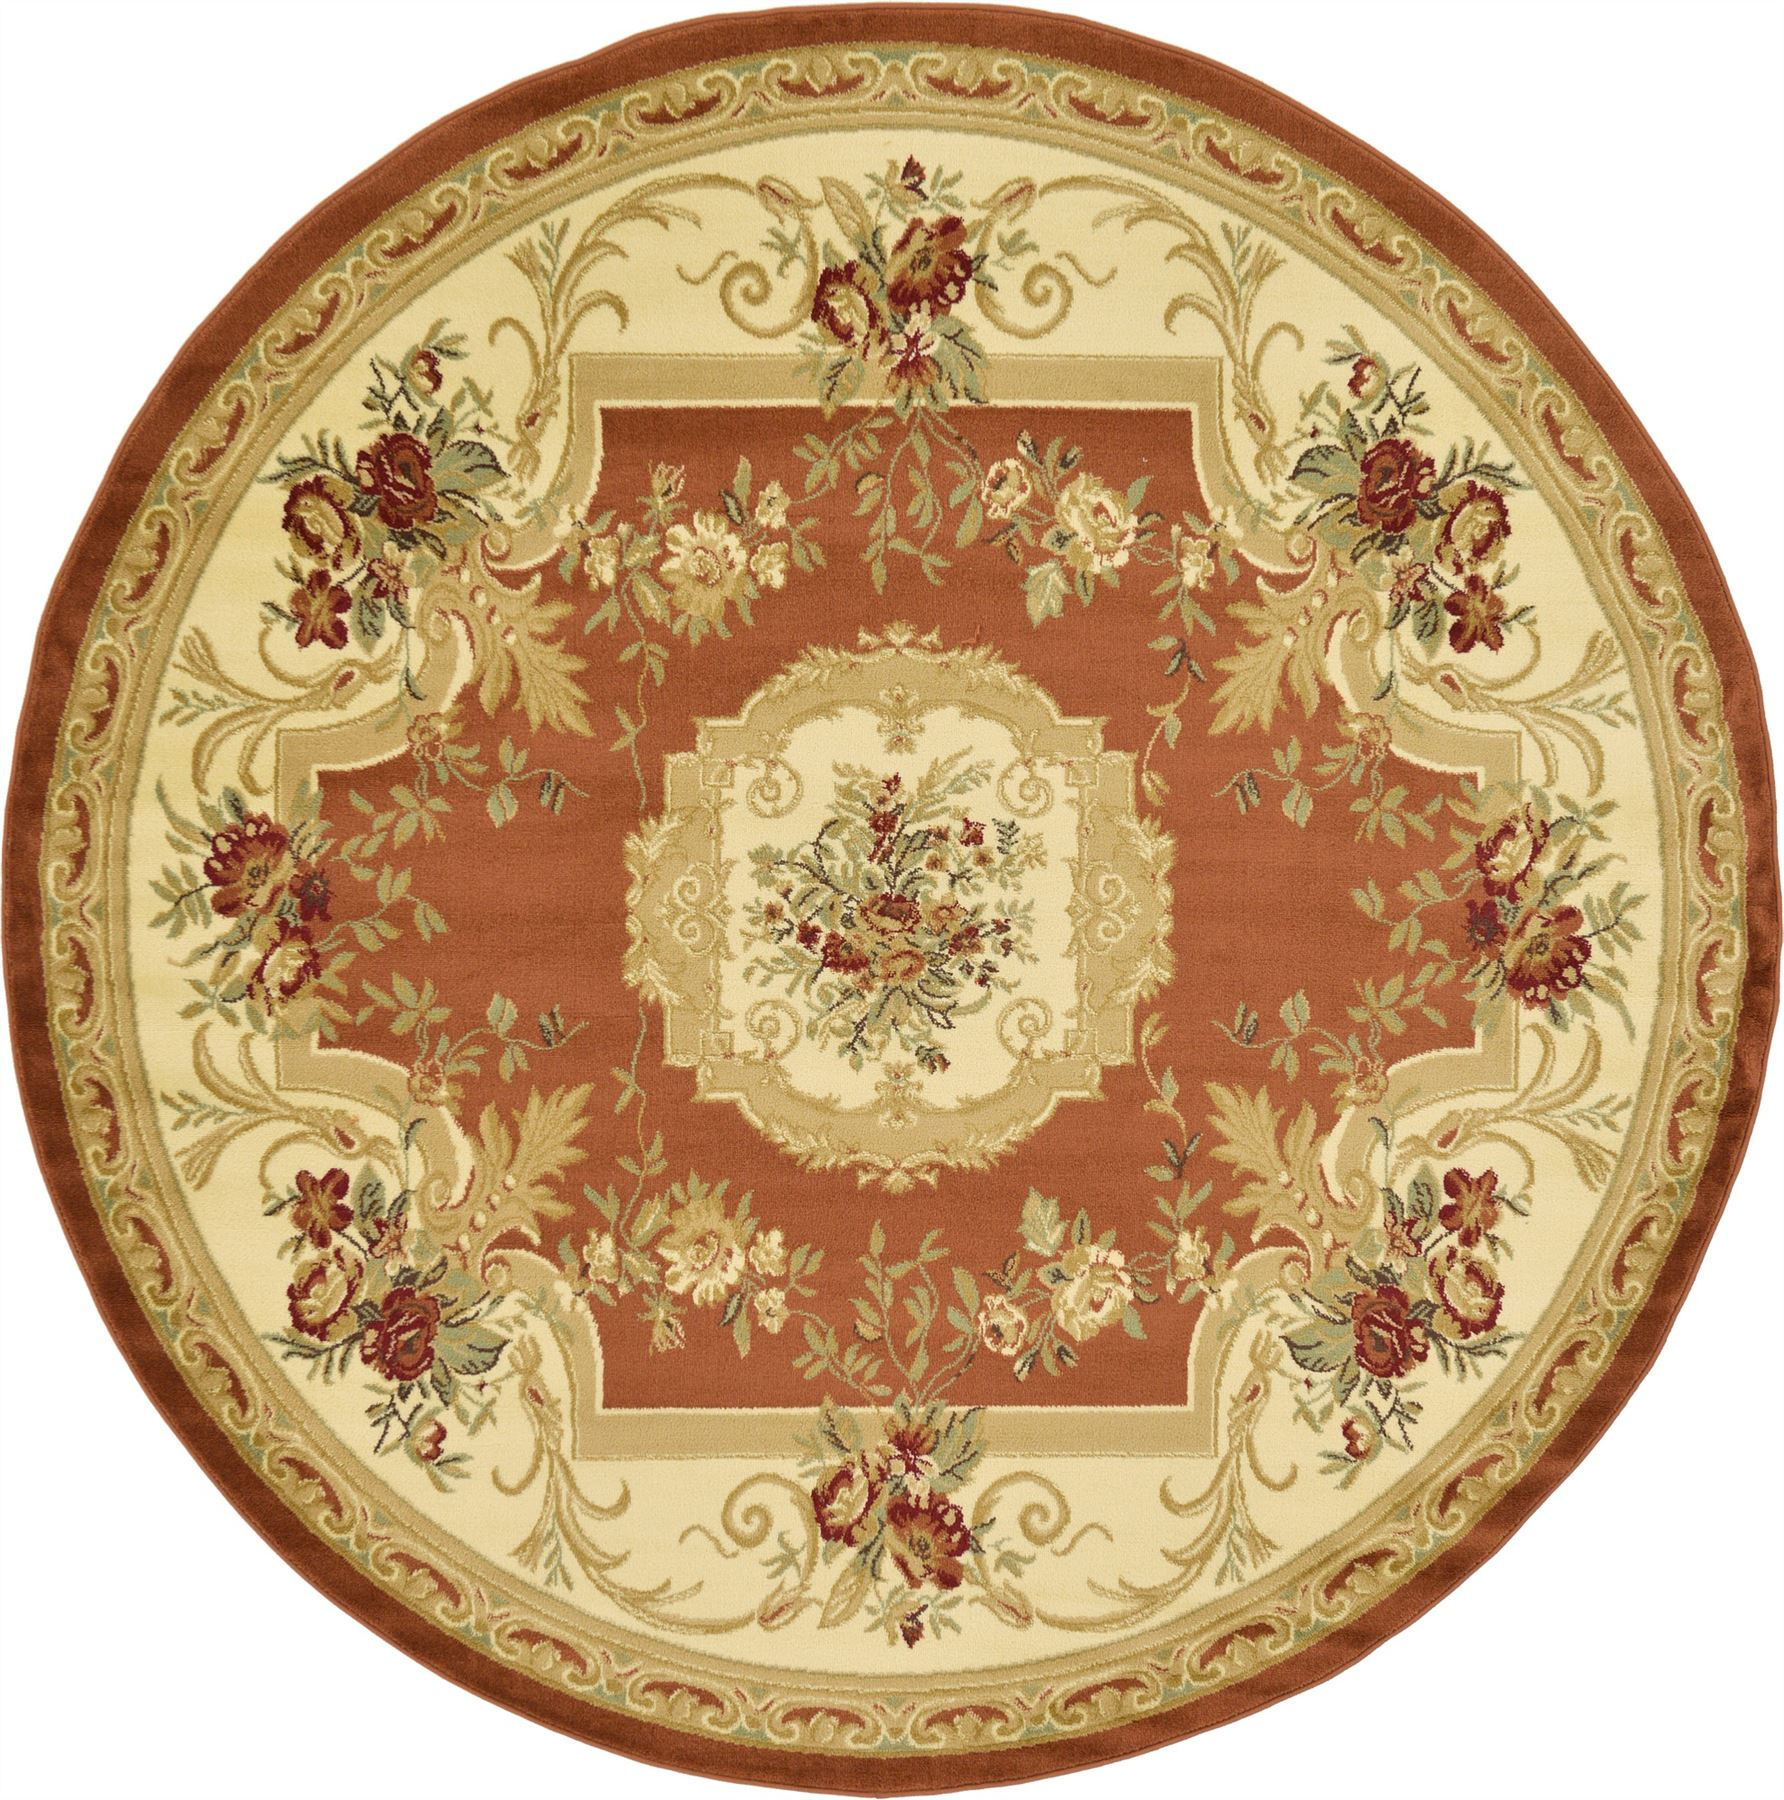 Oriental-Large-Area-Rug-Square-Traditional-Country-Round-Carpet-Medallion-Small thumbnail 8